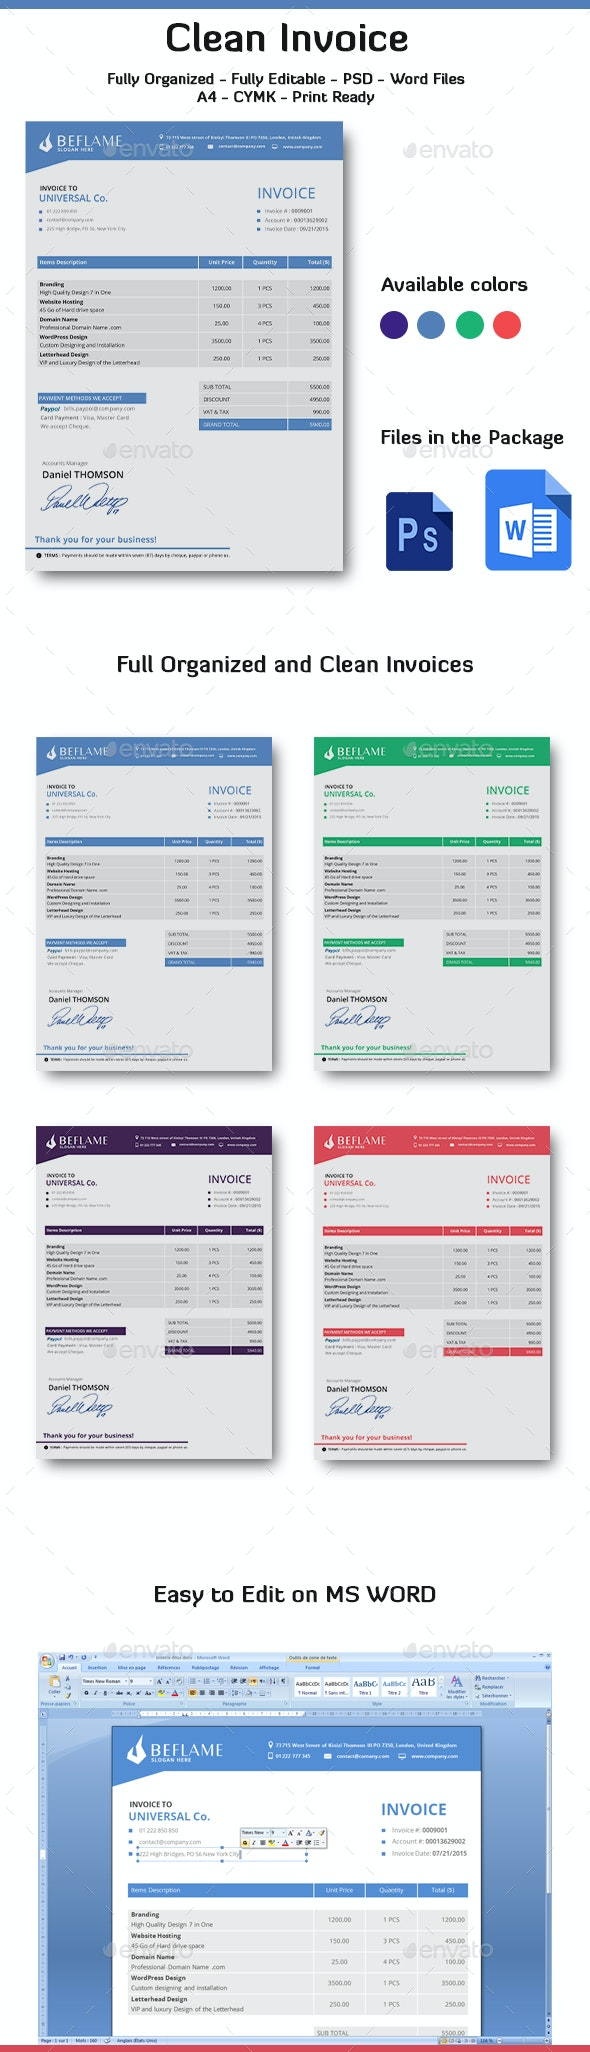 Invoice Word - Proposals & Invoices Stationery